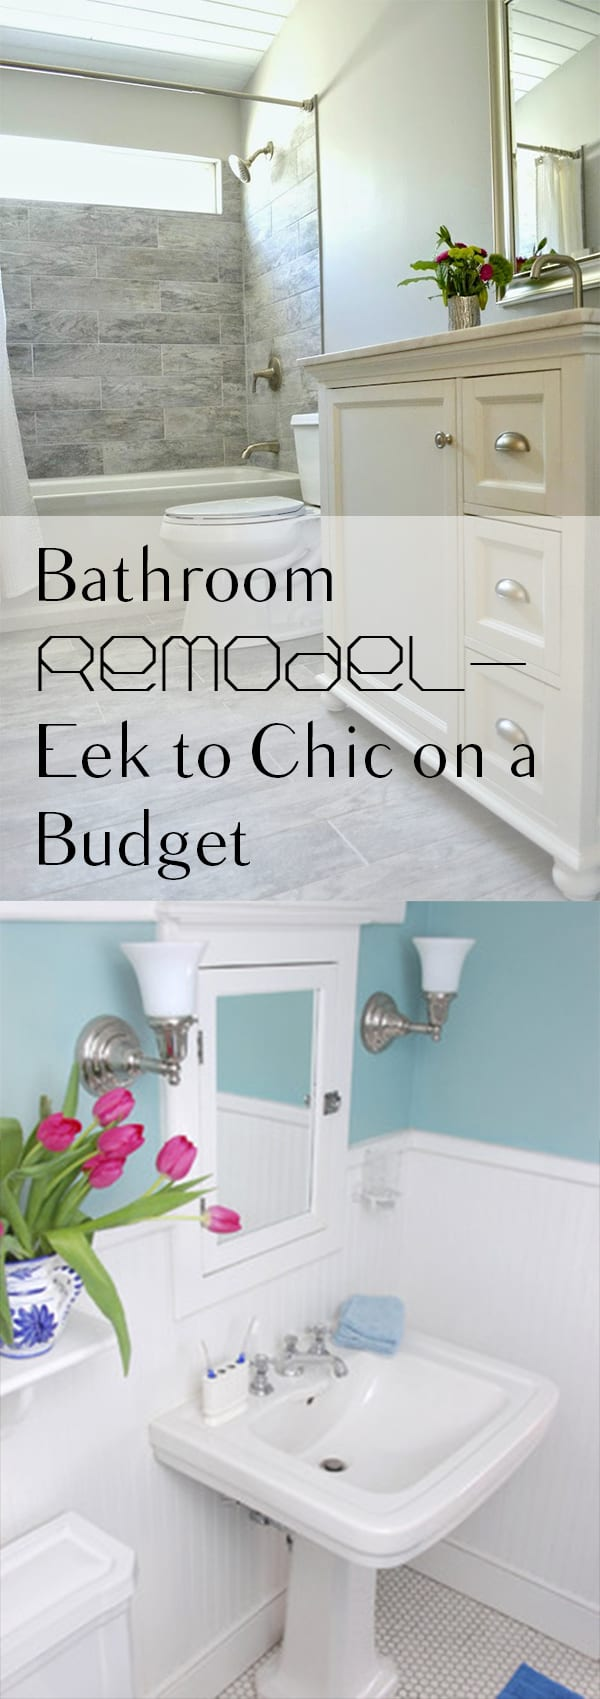 How to remodel your bathroom from eek to chic on a budget for Cheap and easy home improvements